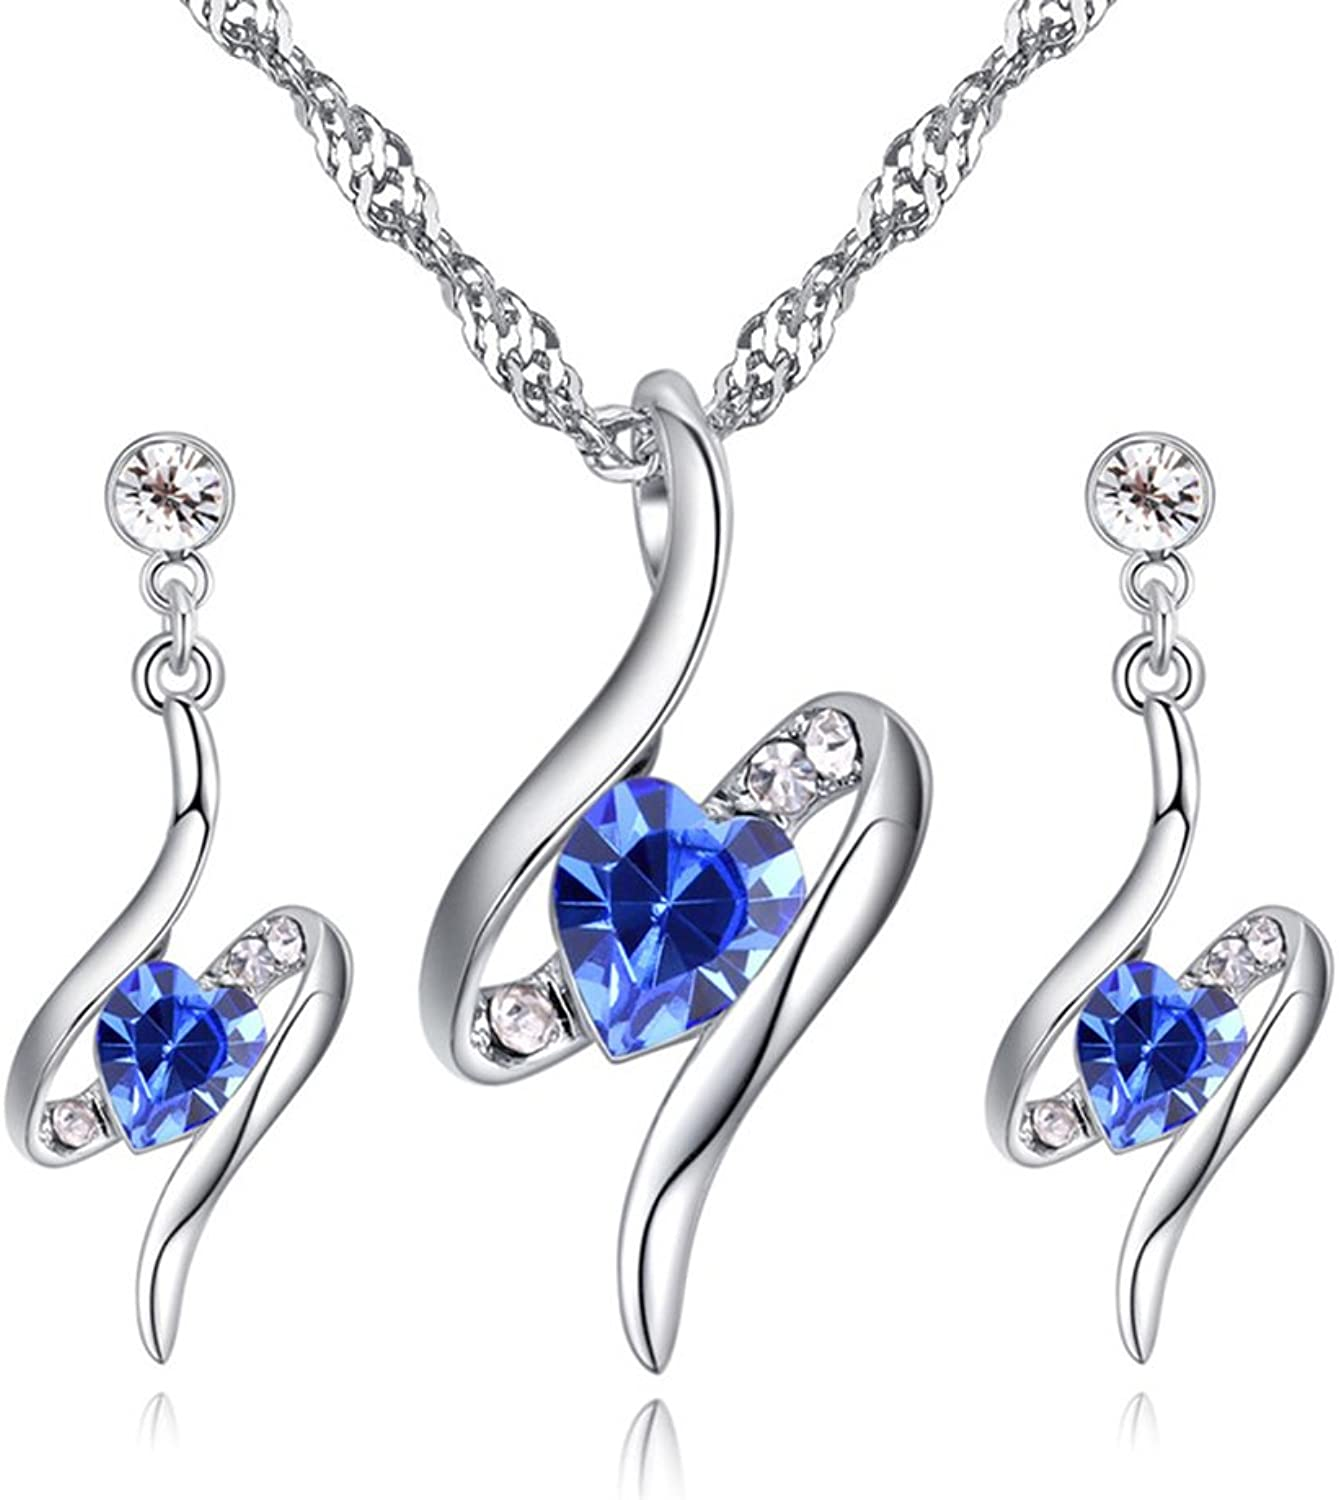 Bridal Jewelry Set Fashion Atmosphere Austrian Crystal HeartShaped Water Drop Necklace Jewelry Female,Sapphire